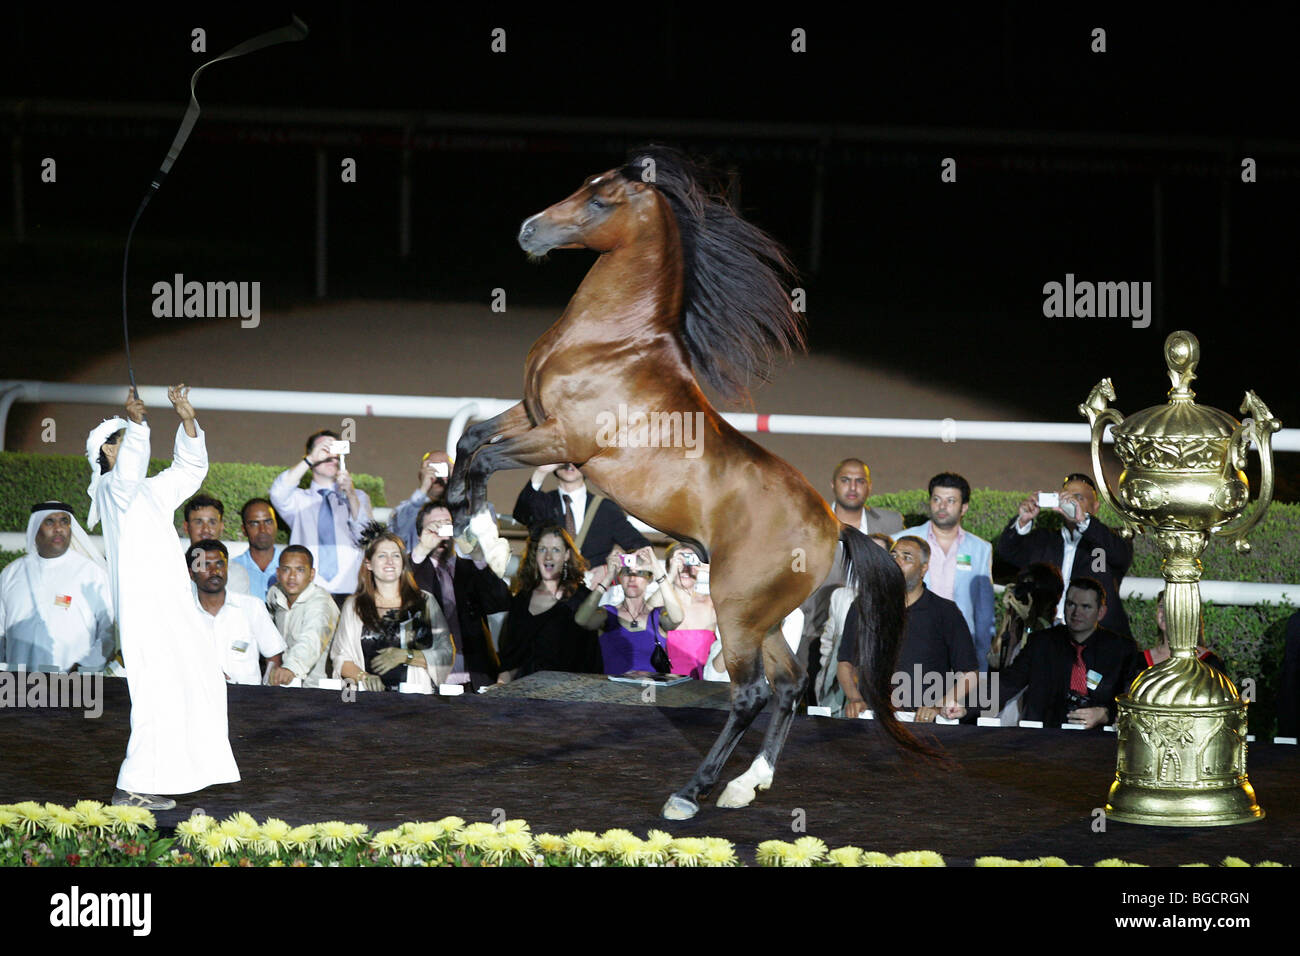 A horse rearing on command, Dubai, United Arab Emirates - Stock Image